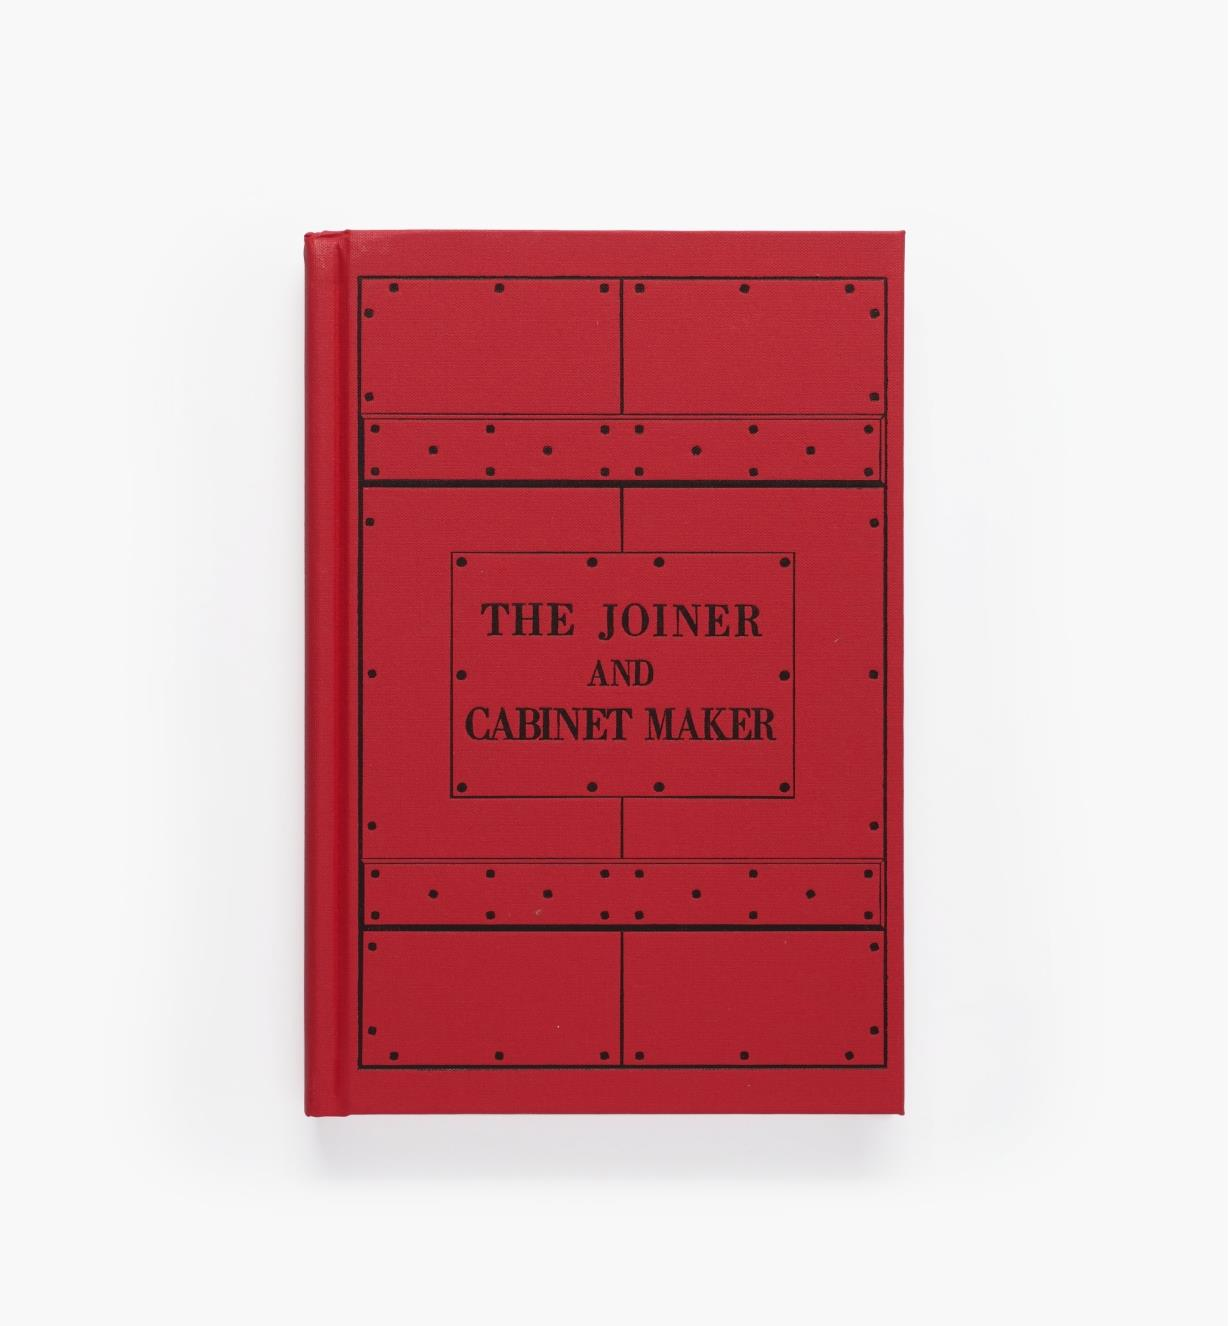 20L0308 - The Joiner and Cabinet Maker - Book